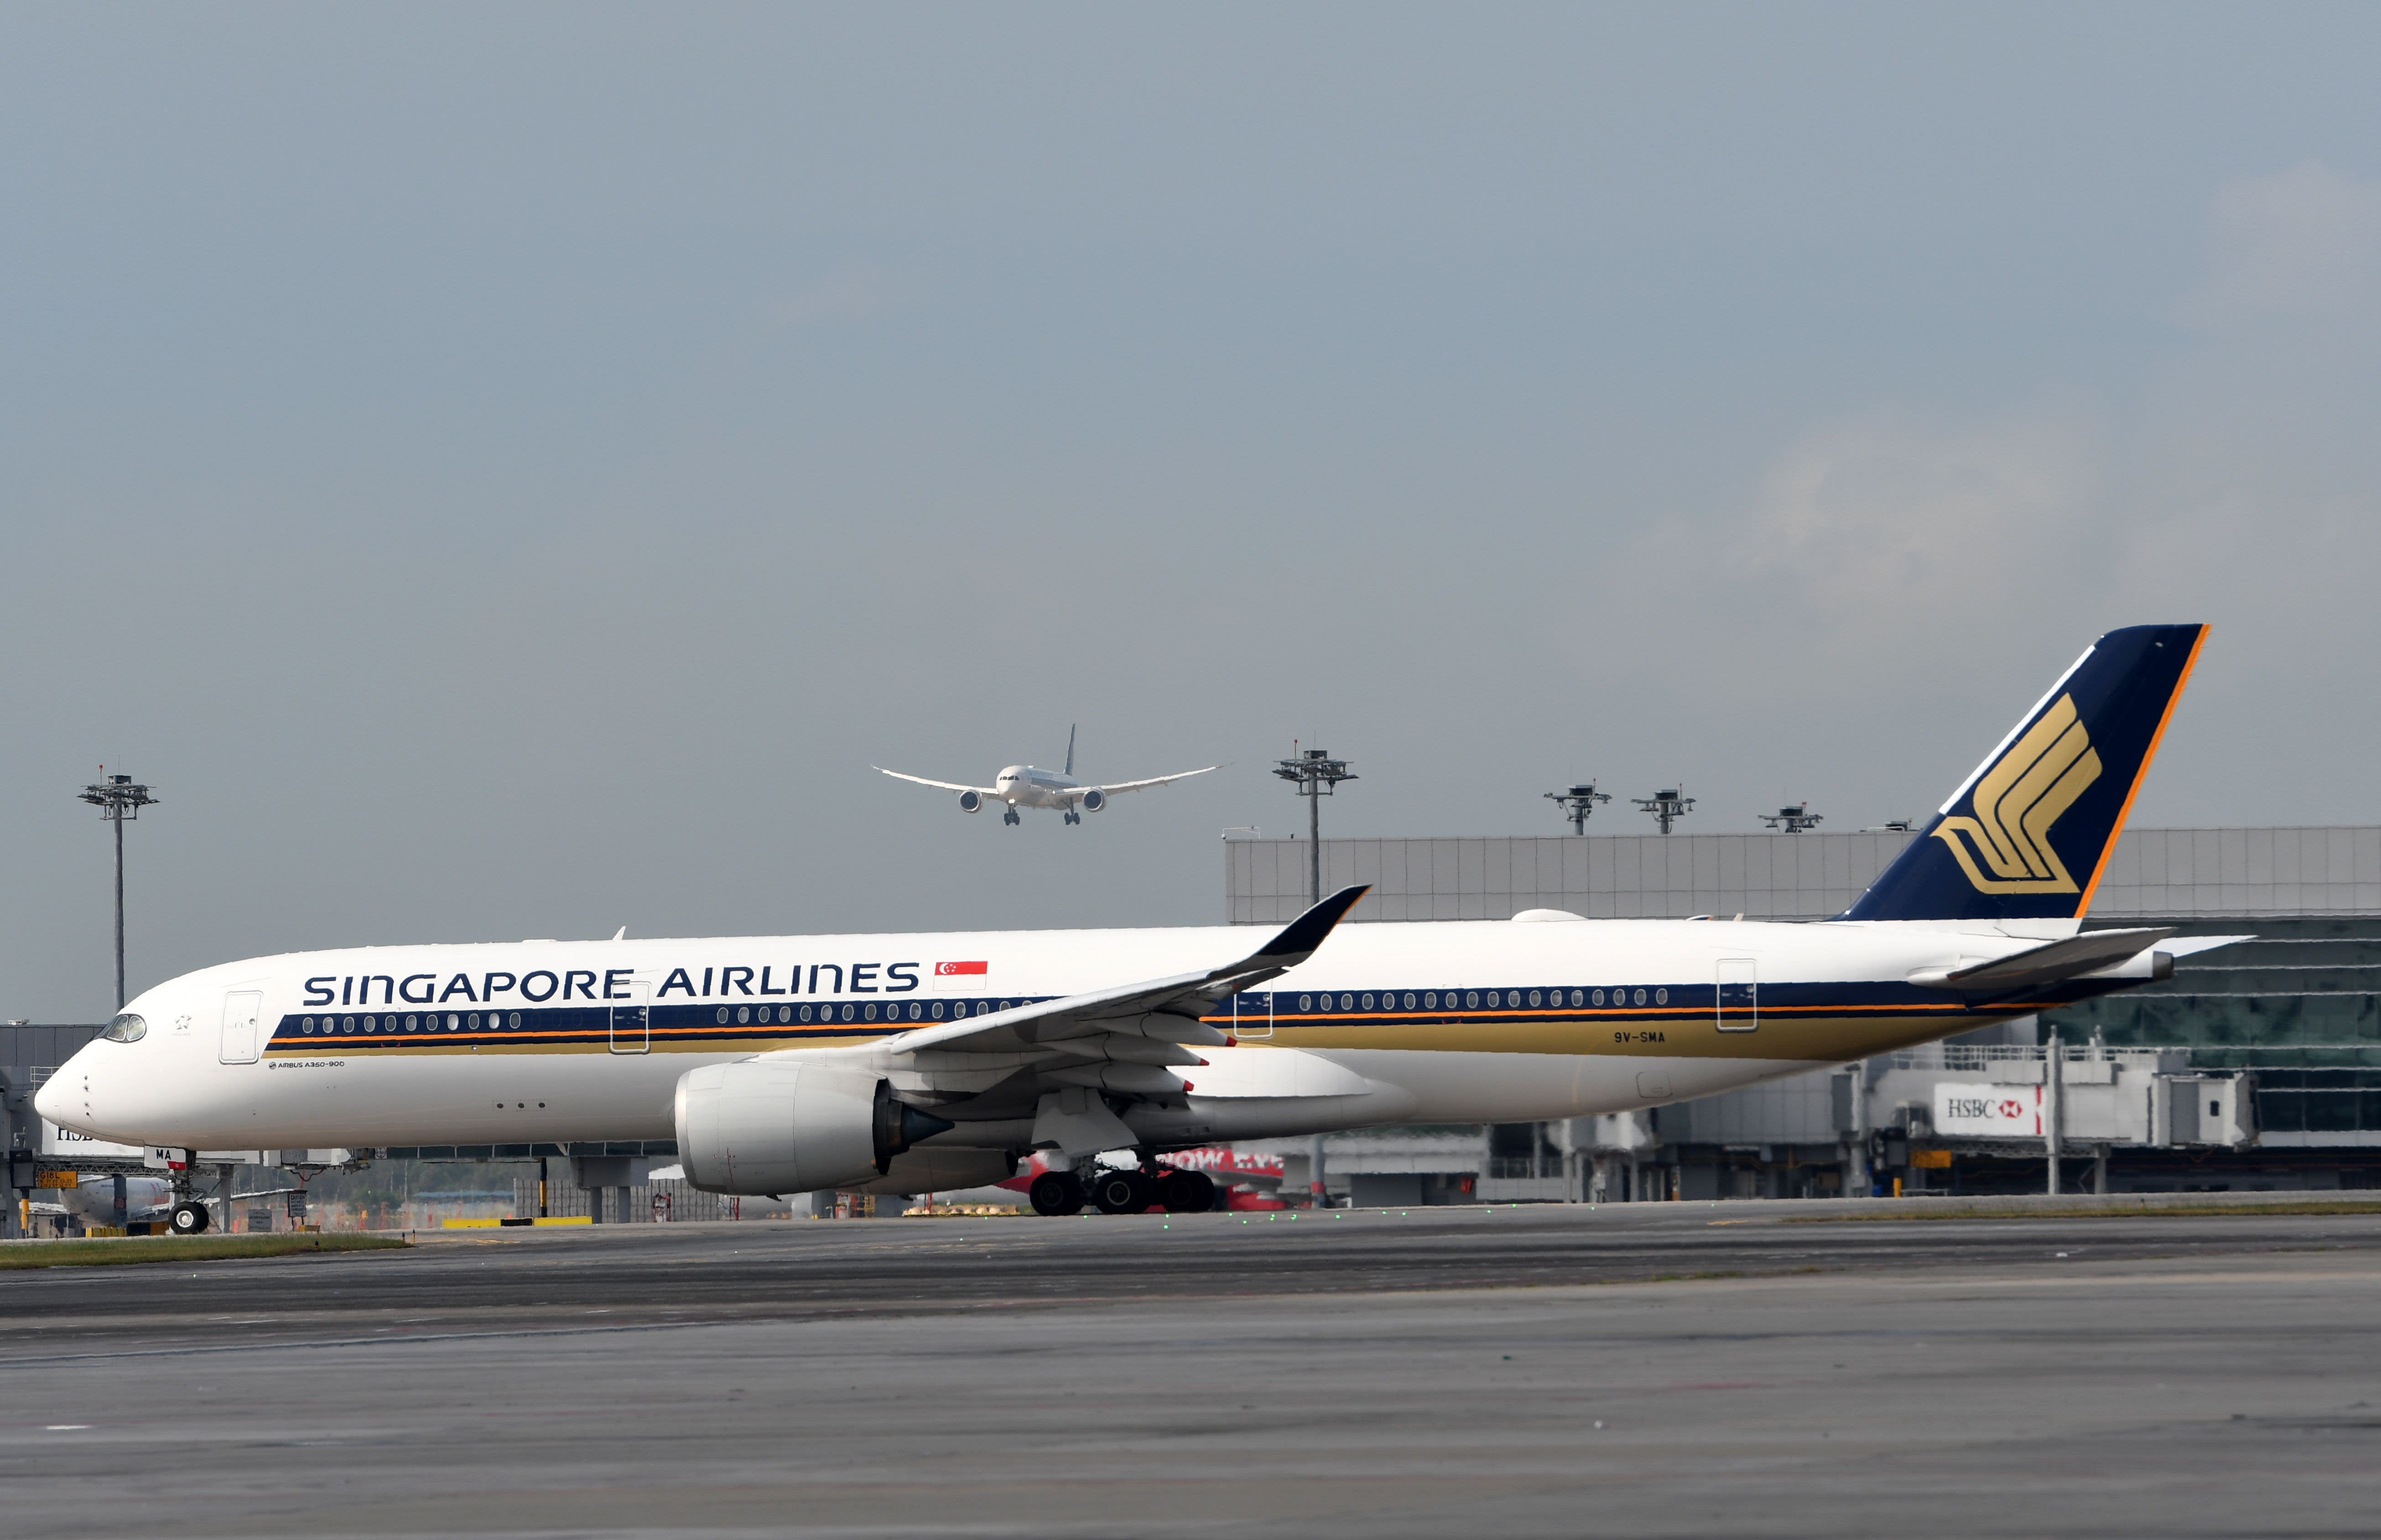 Tough times ahead for Singapore Airlines, but one analyst says it appears better positioned than its peers